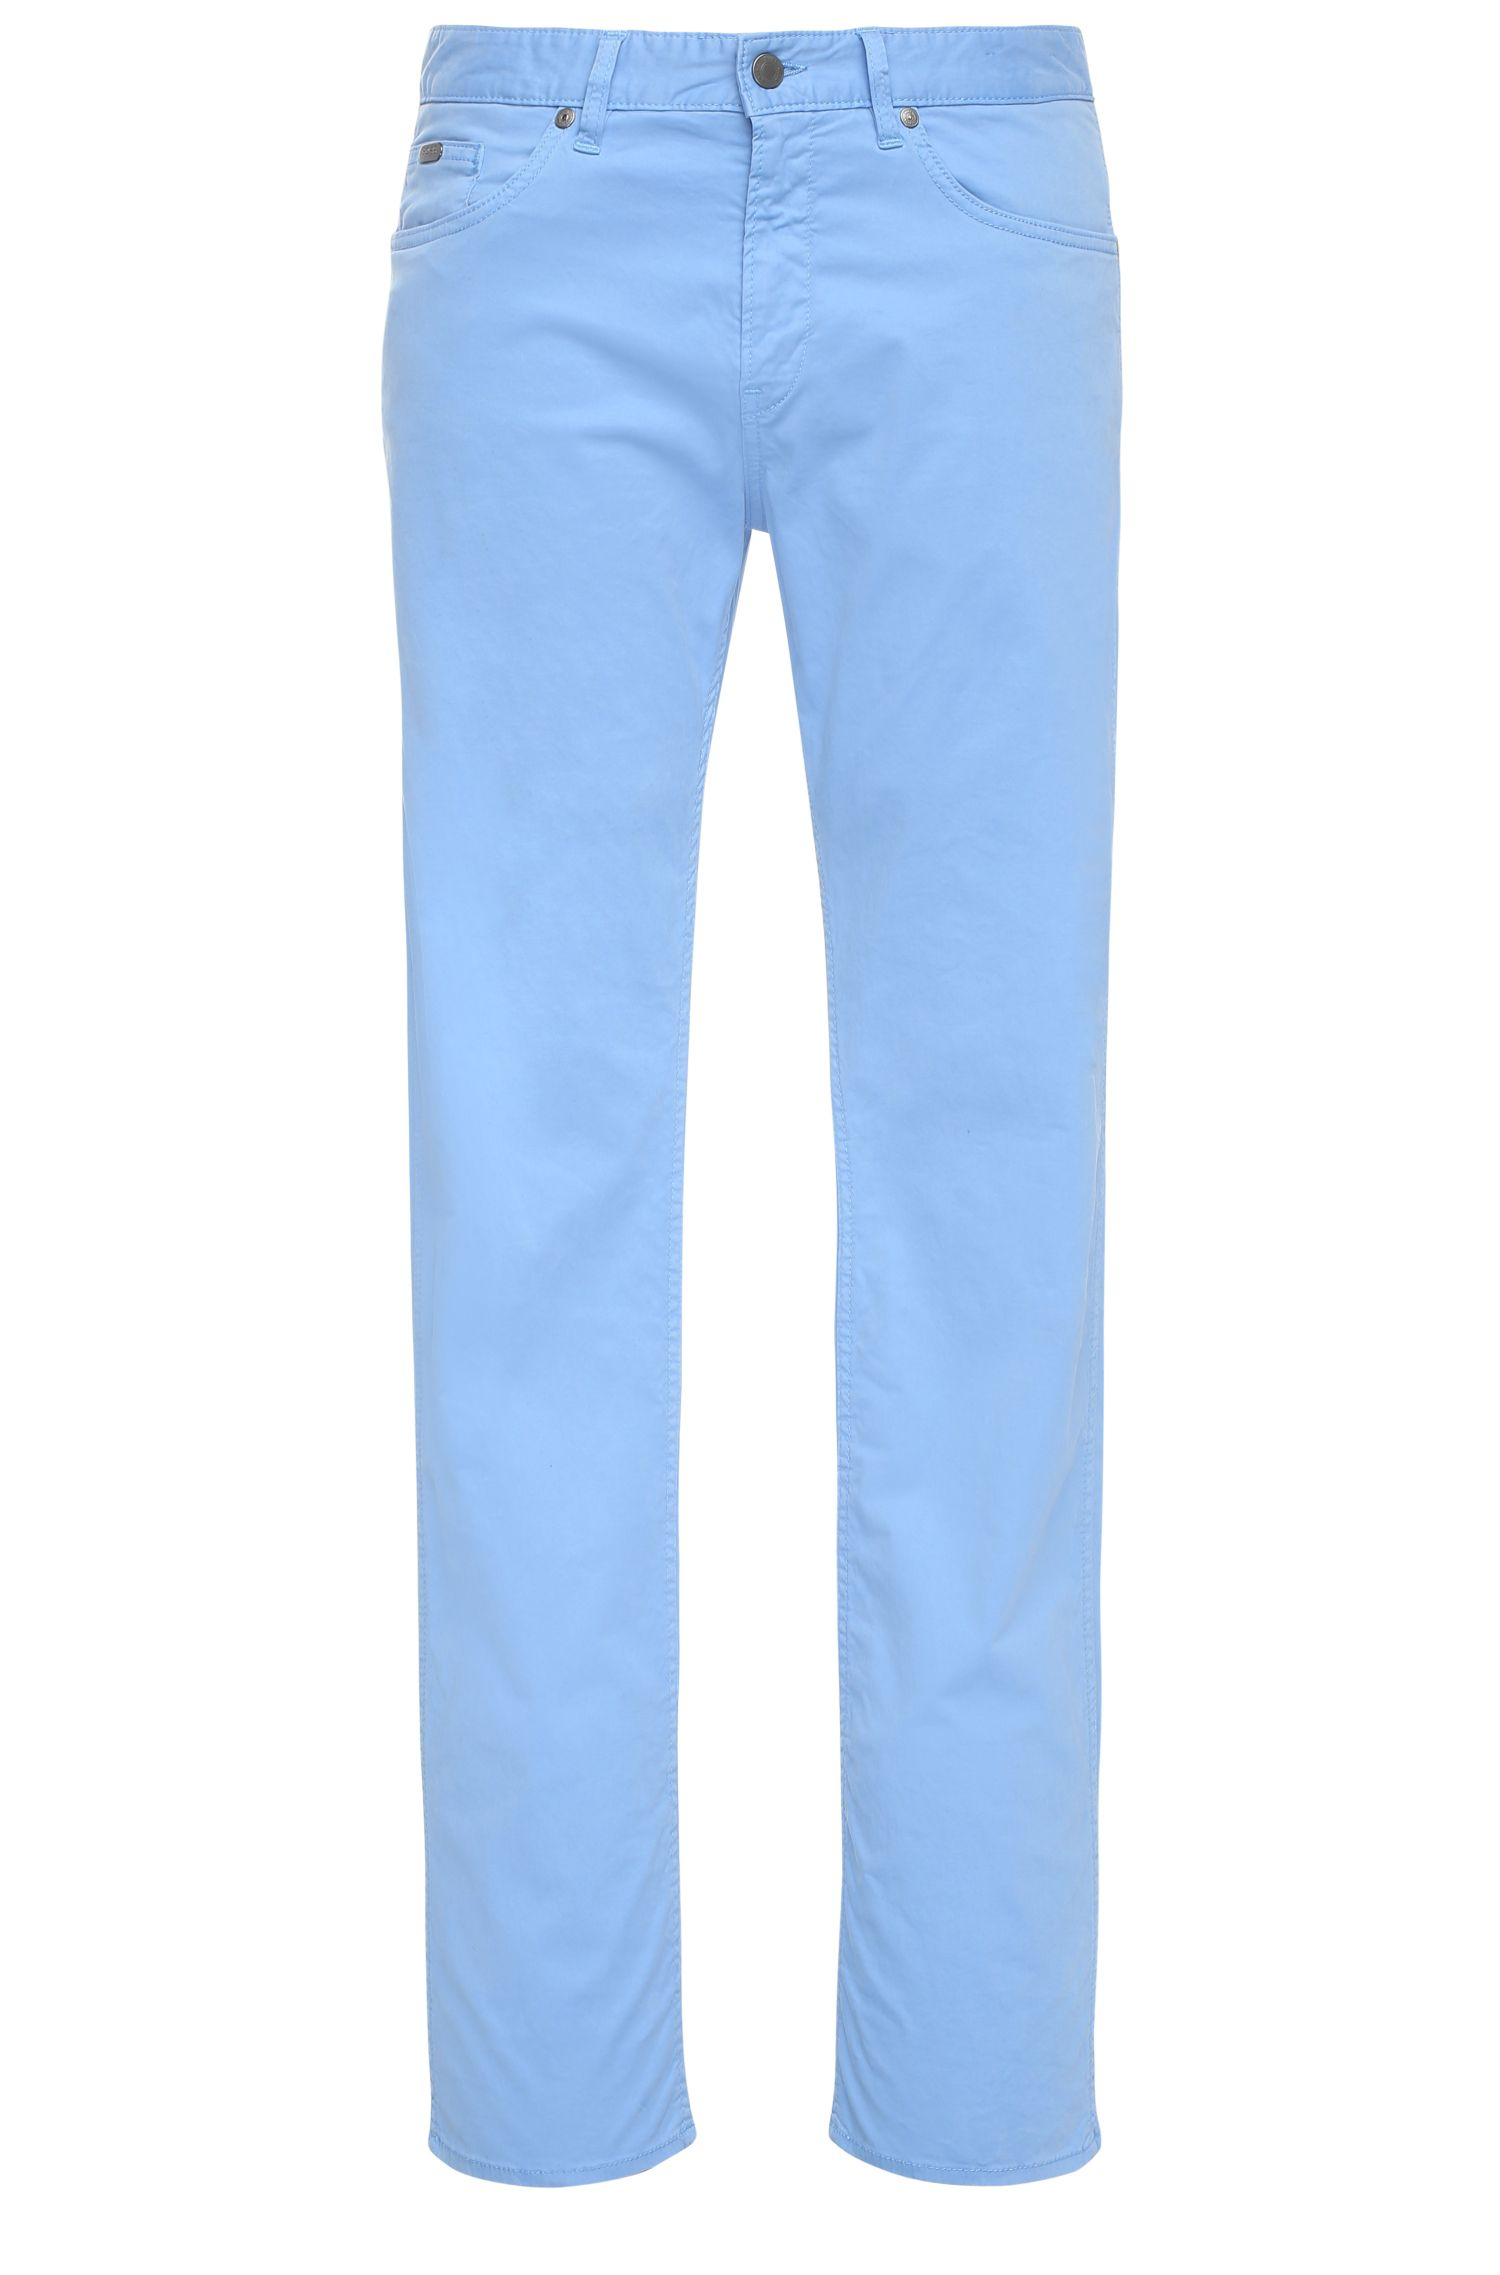 Jeans Slim Fit en coton stretch : « C-Delaware2-20 »